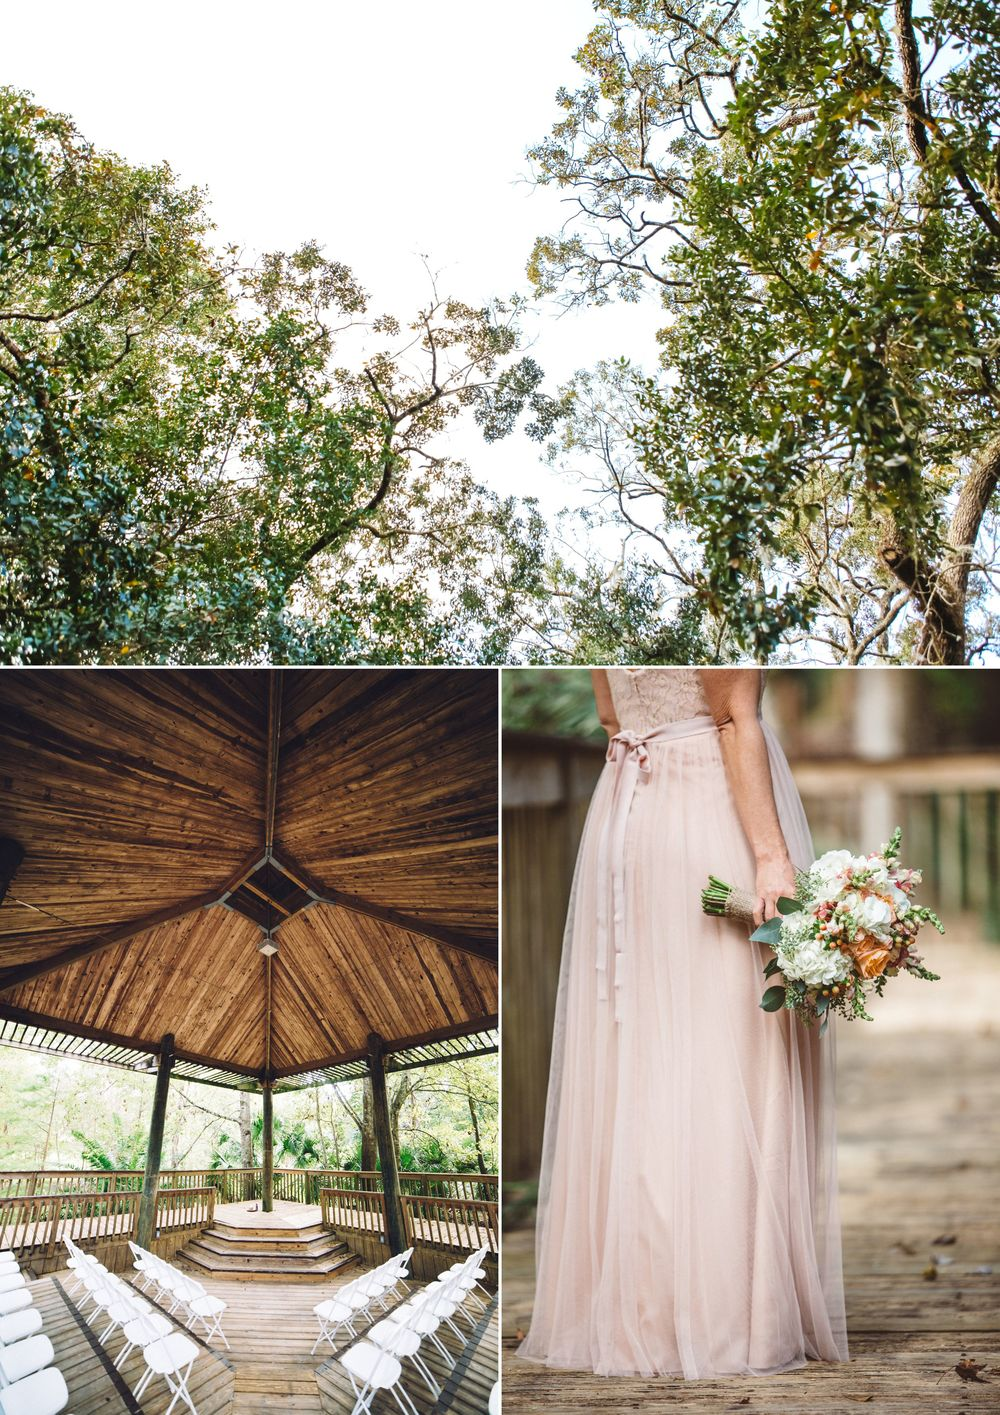 Orlando Bride in BHLDN Blush Rose Gown ShainaDeCiryan.com.jpg